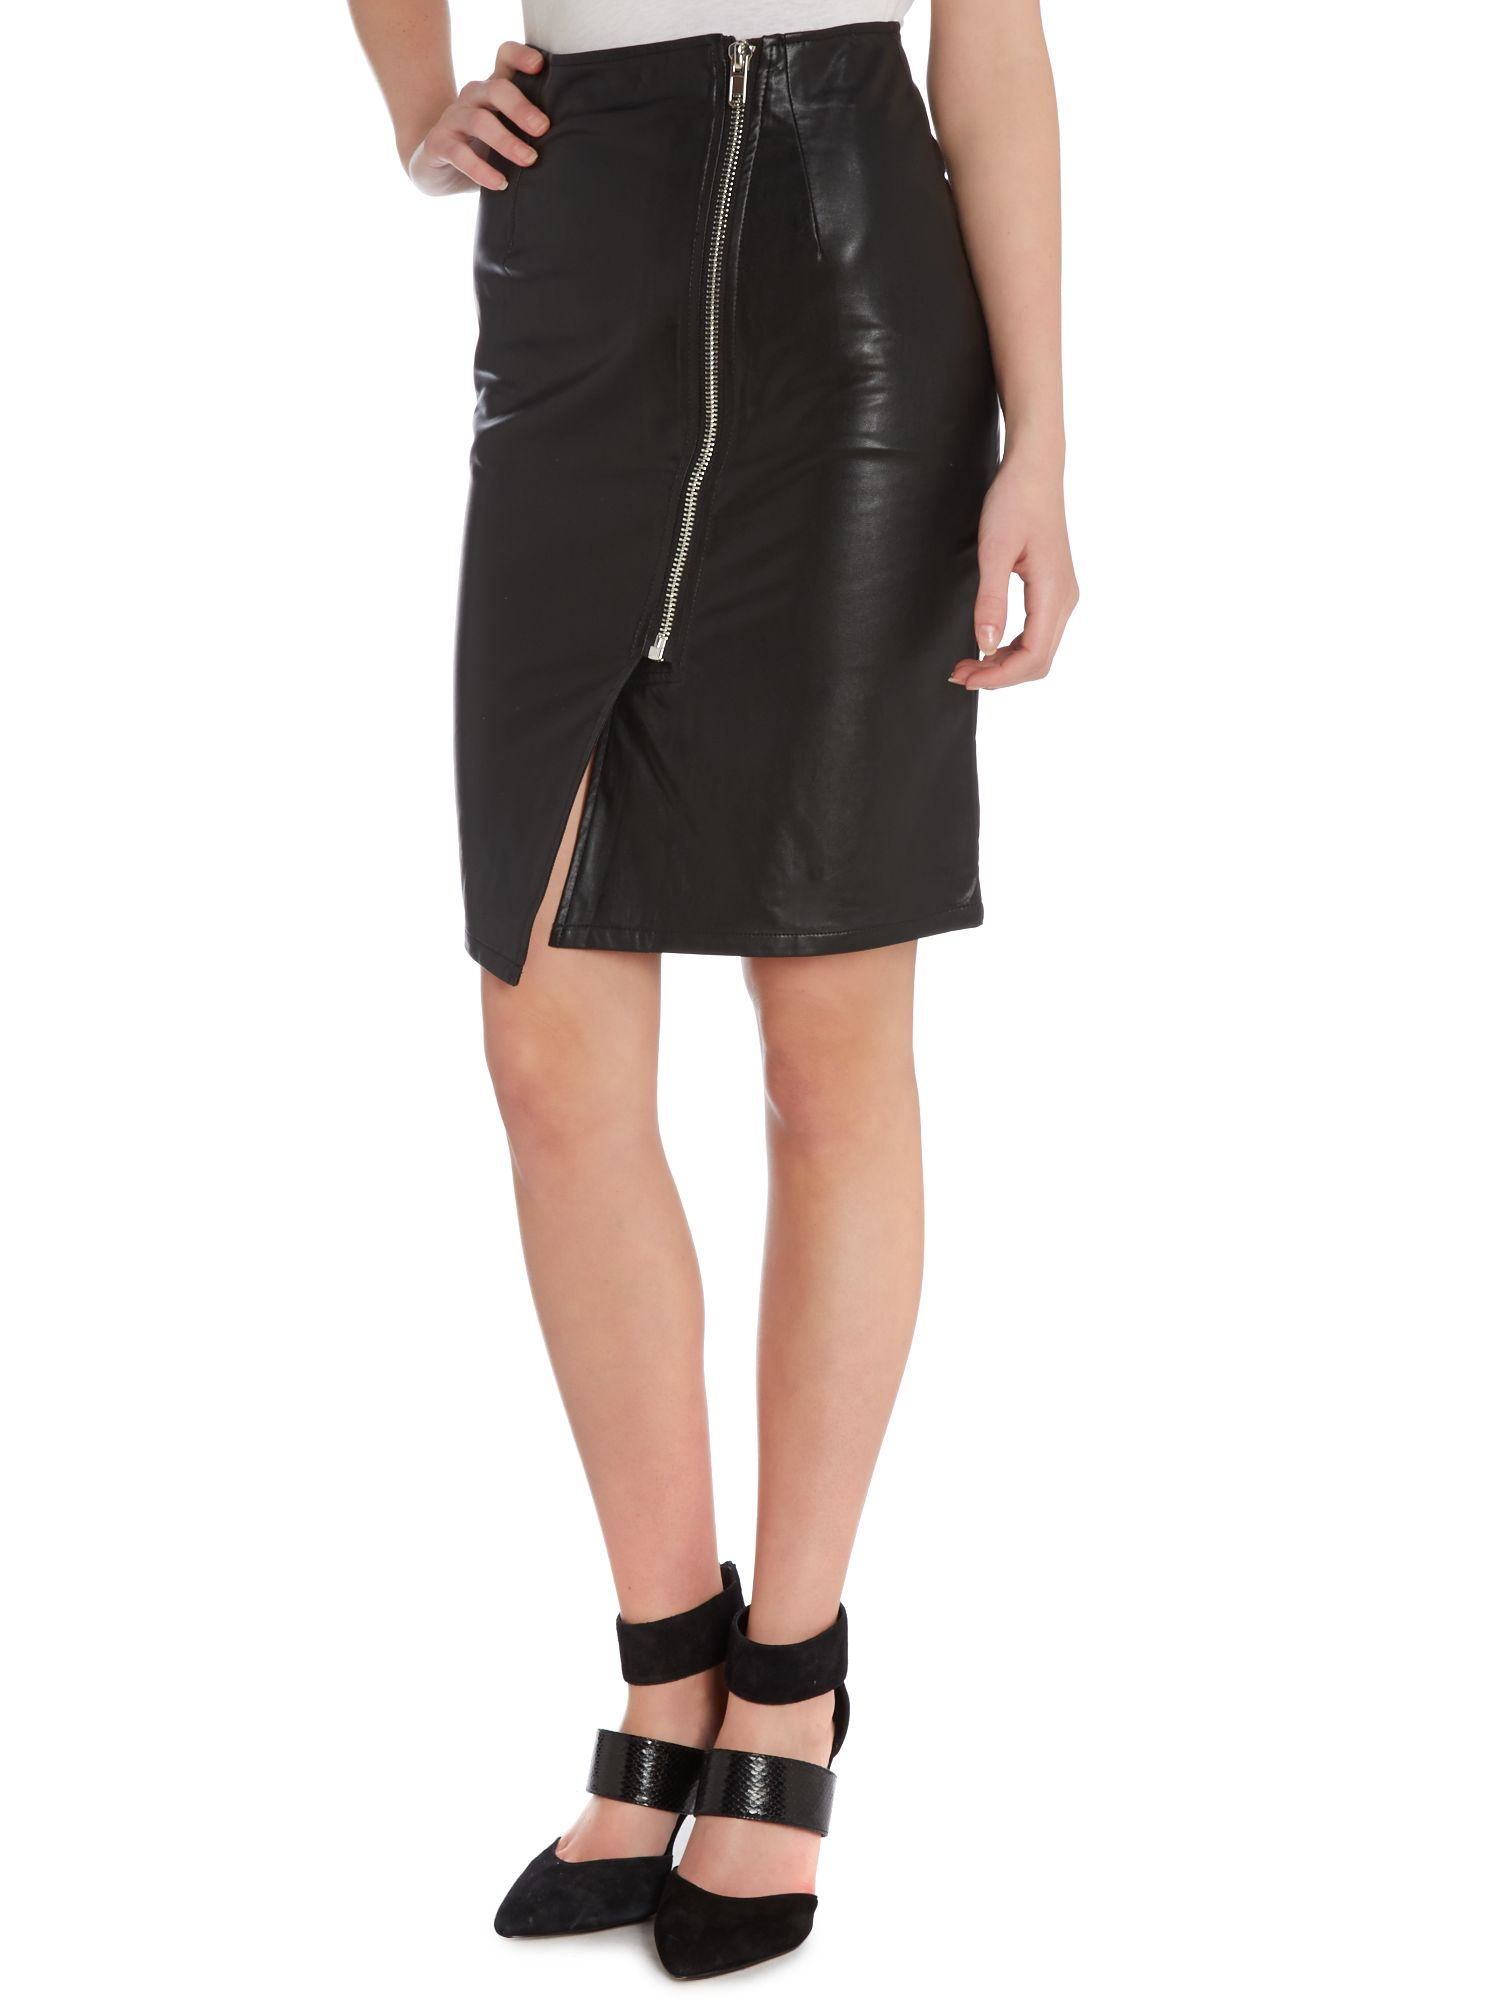 High waist knee zip detail skirt